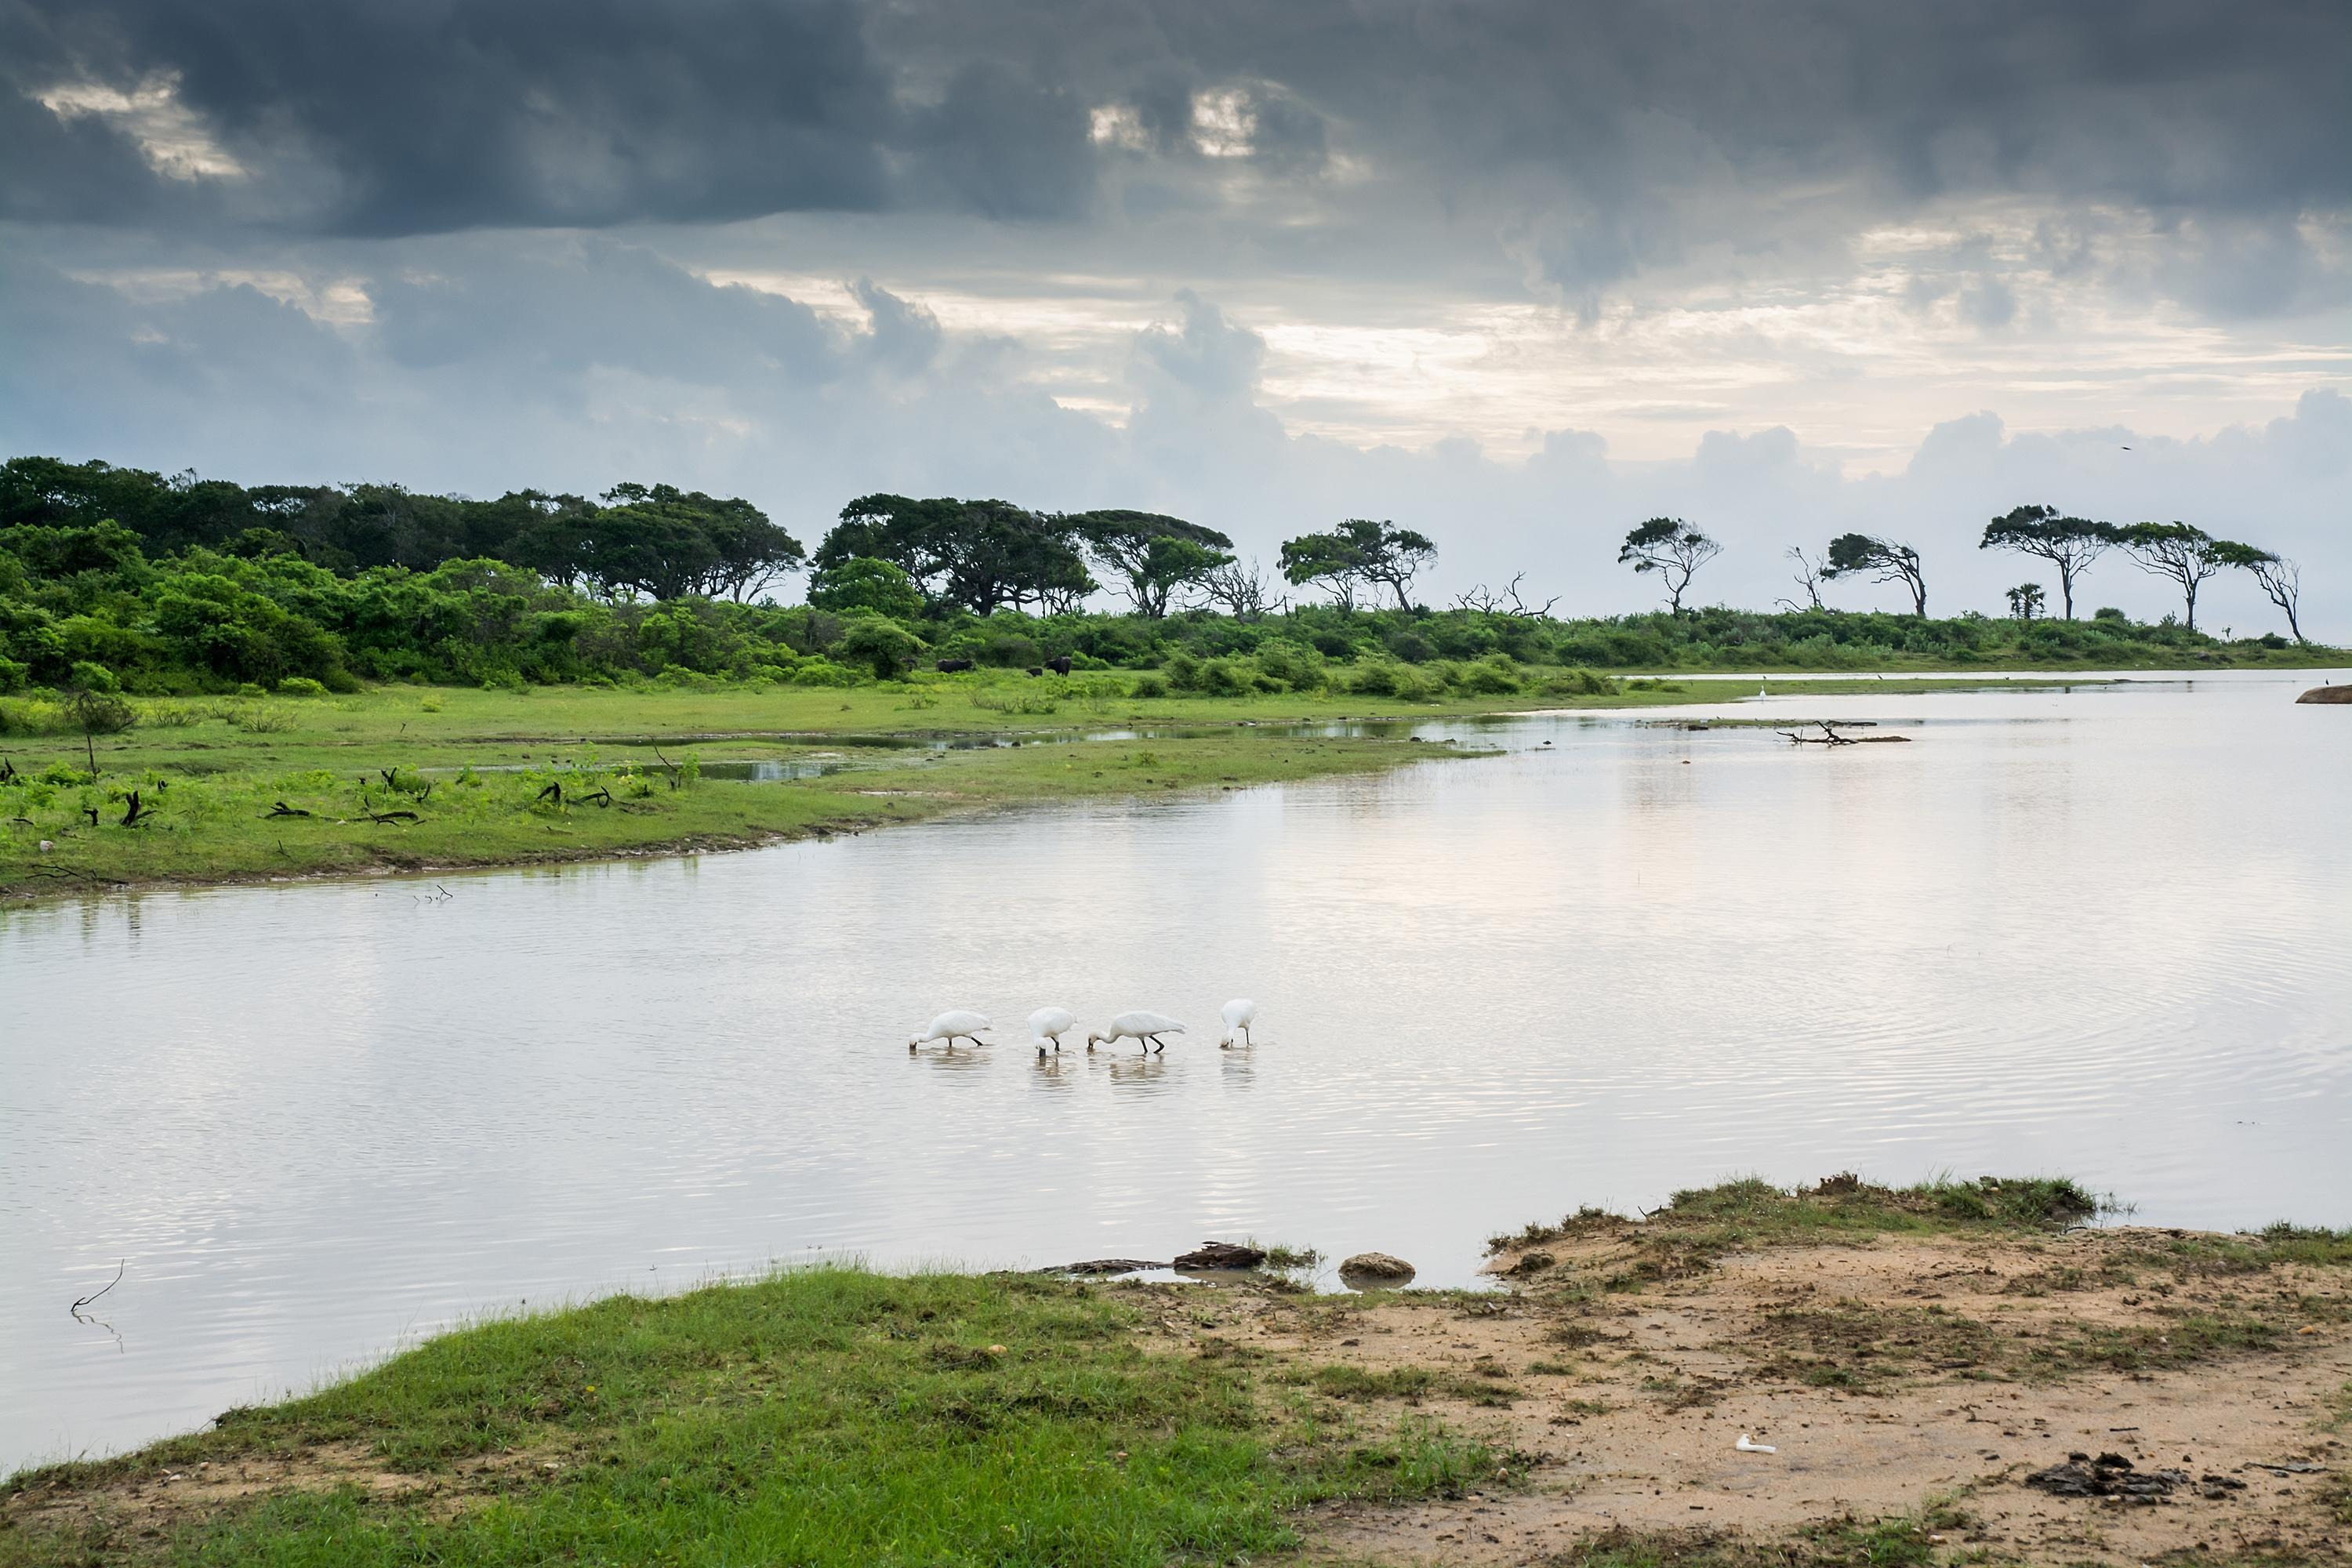 How to Spend 1 Day in Yala National Park